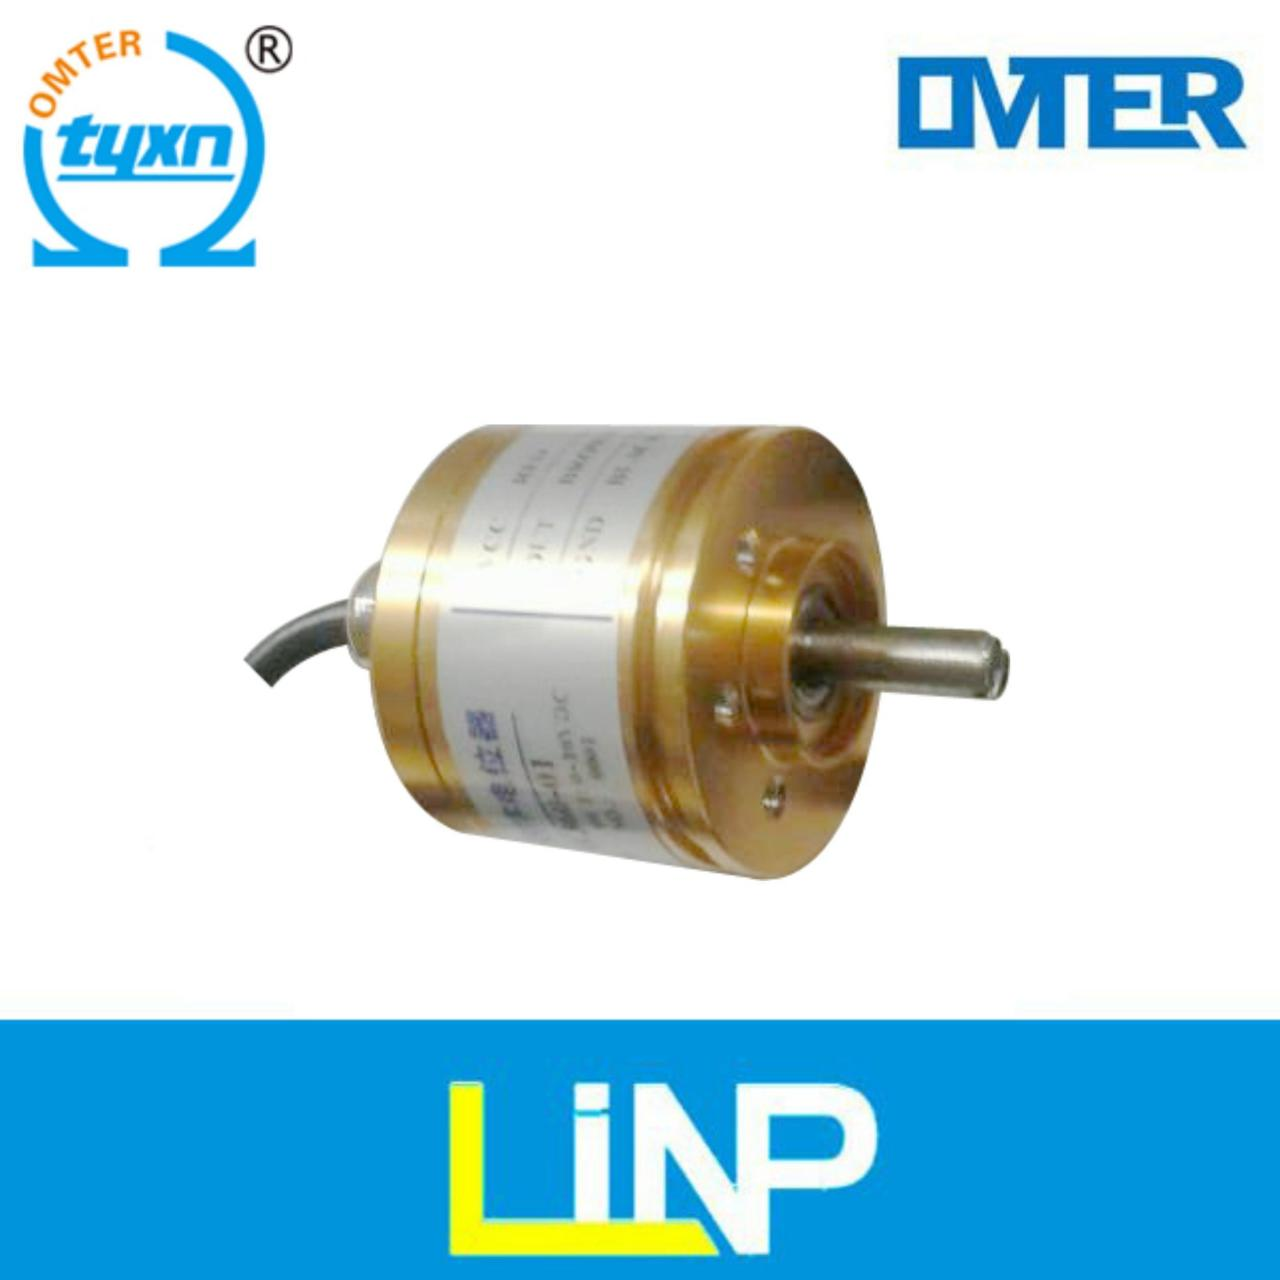 Potentiometer R40 SER digital potentiometer